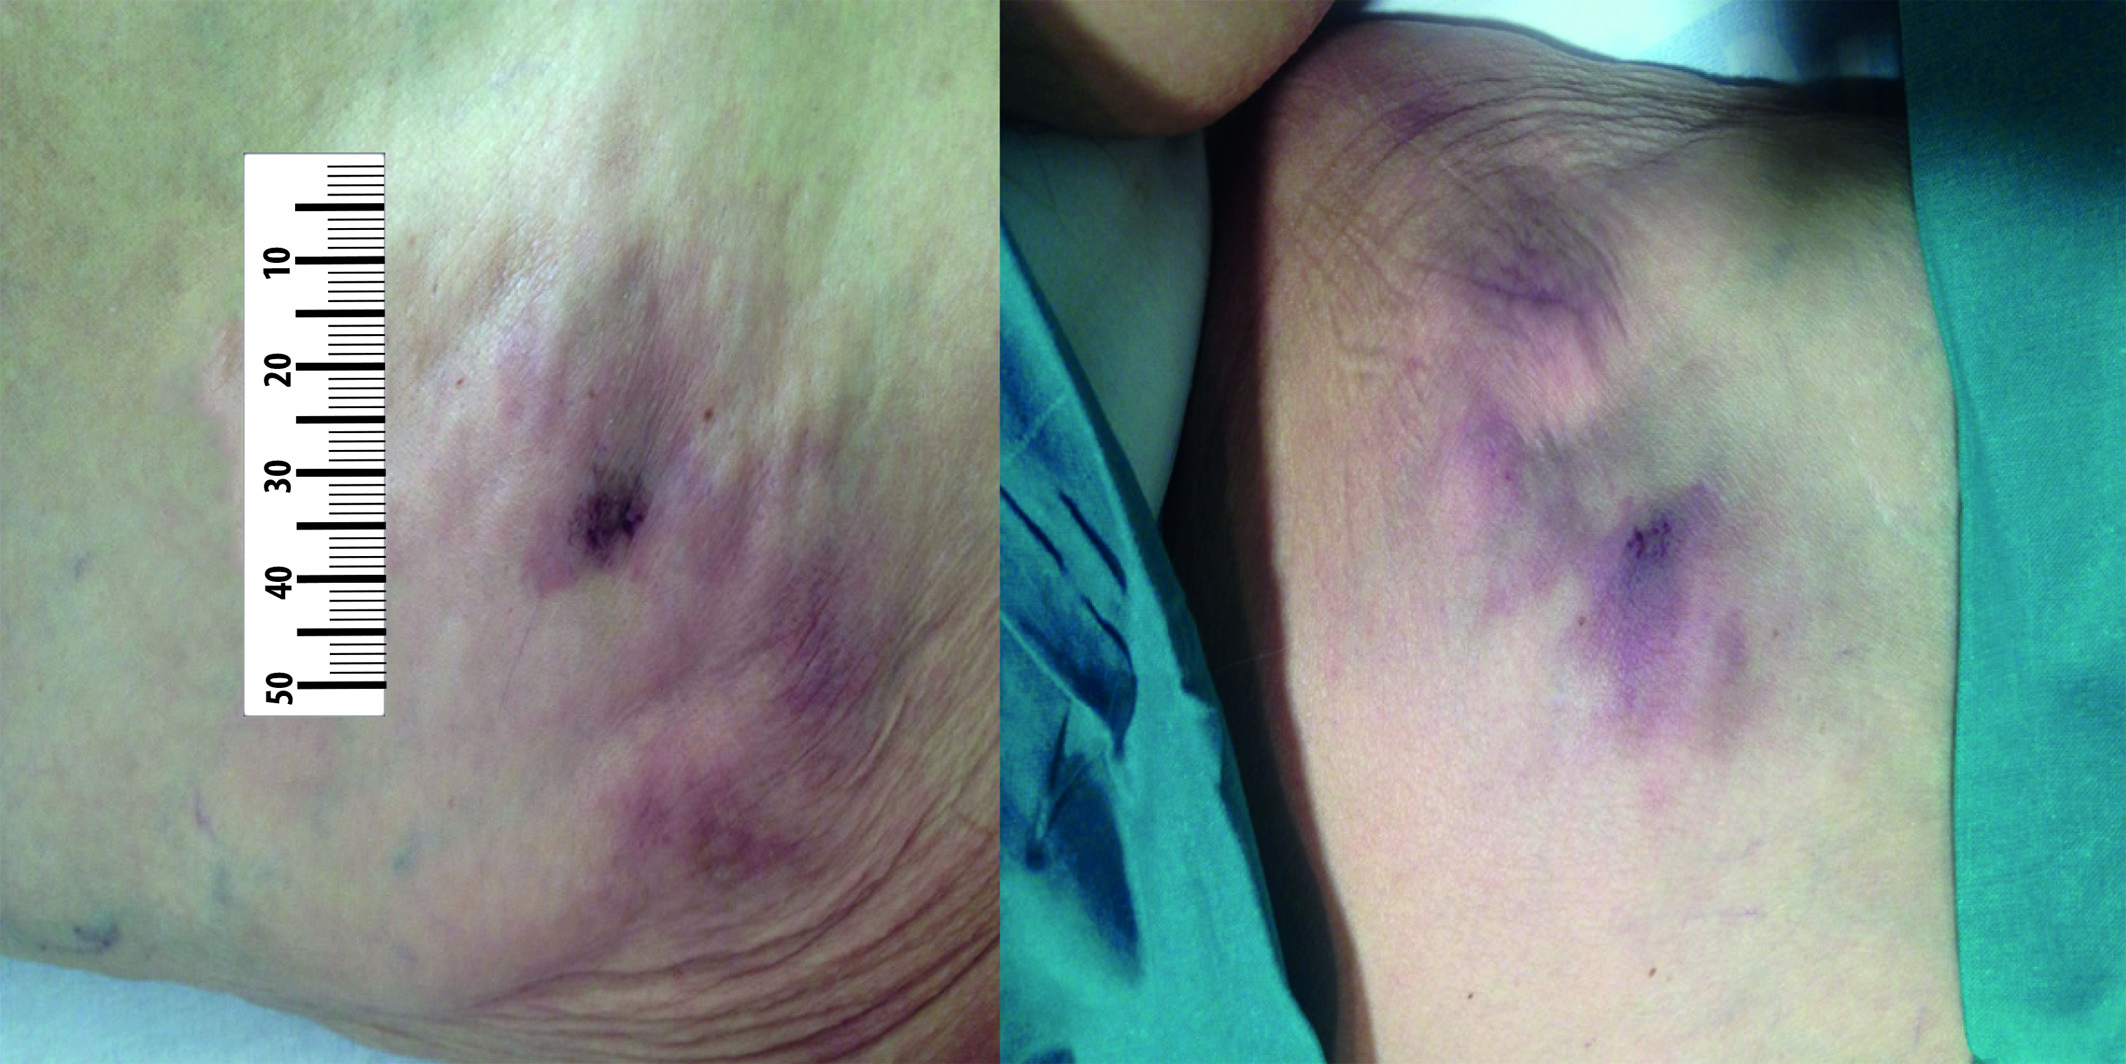 Subcutaneous, non-ulcerated and violaceous nodules on her left front and back thigh respectively, prior to the treatment.